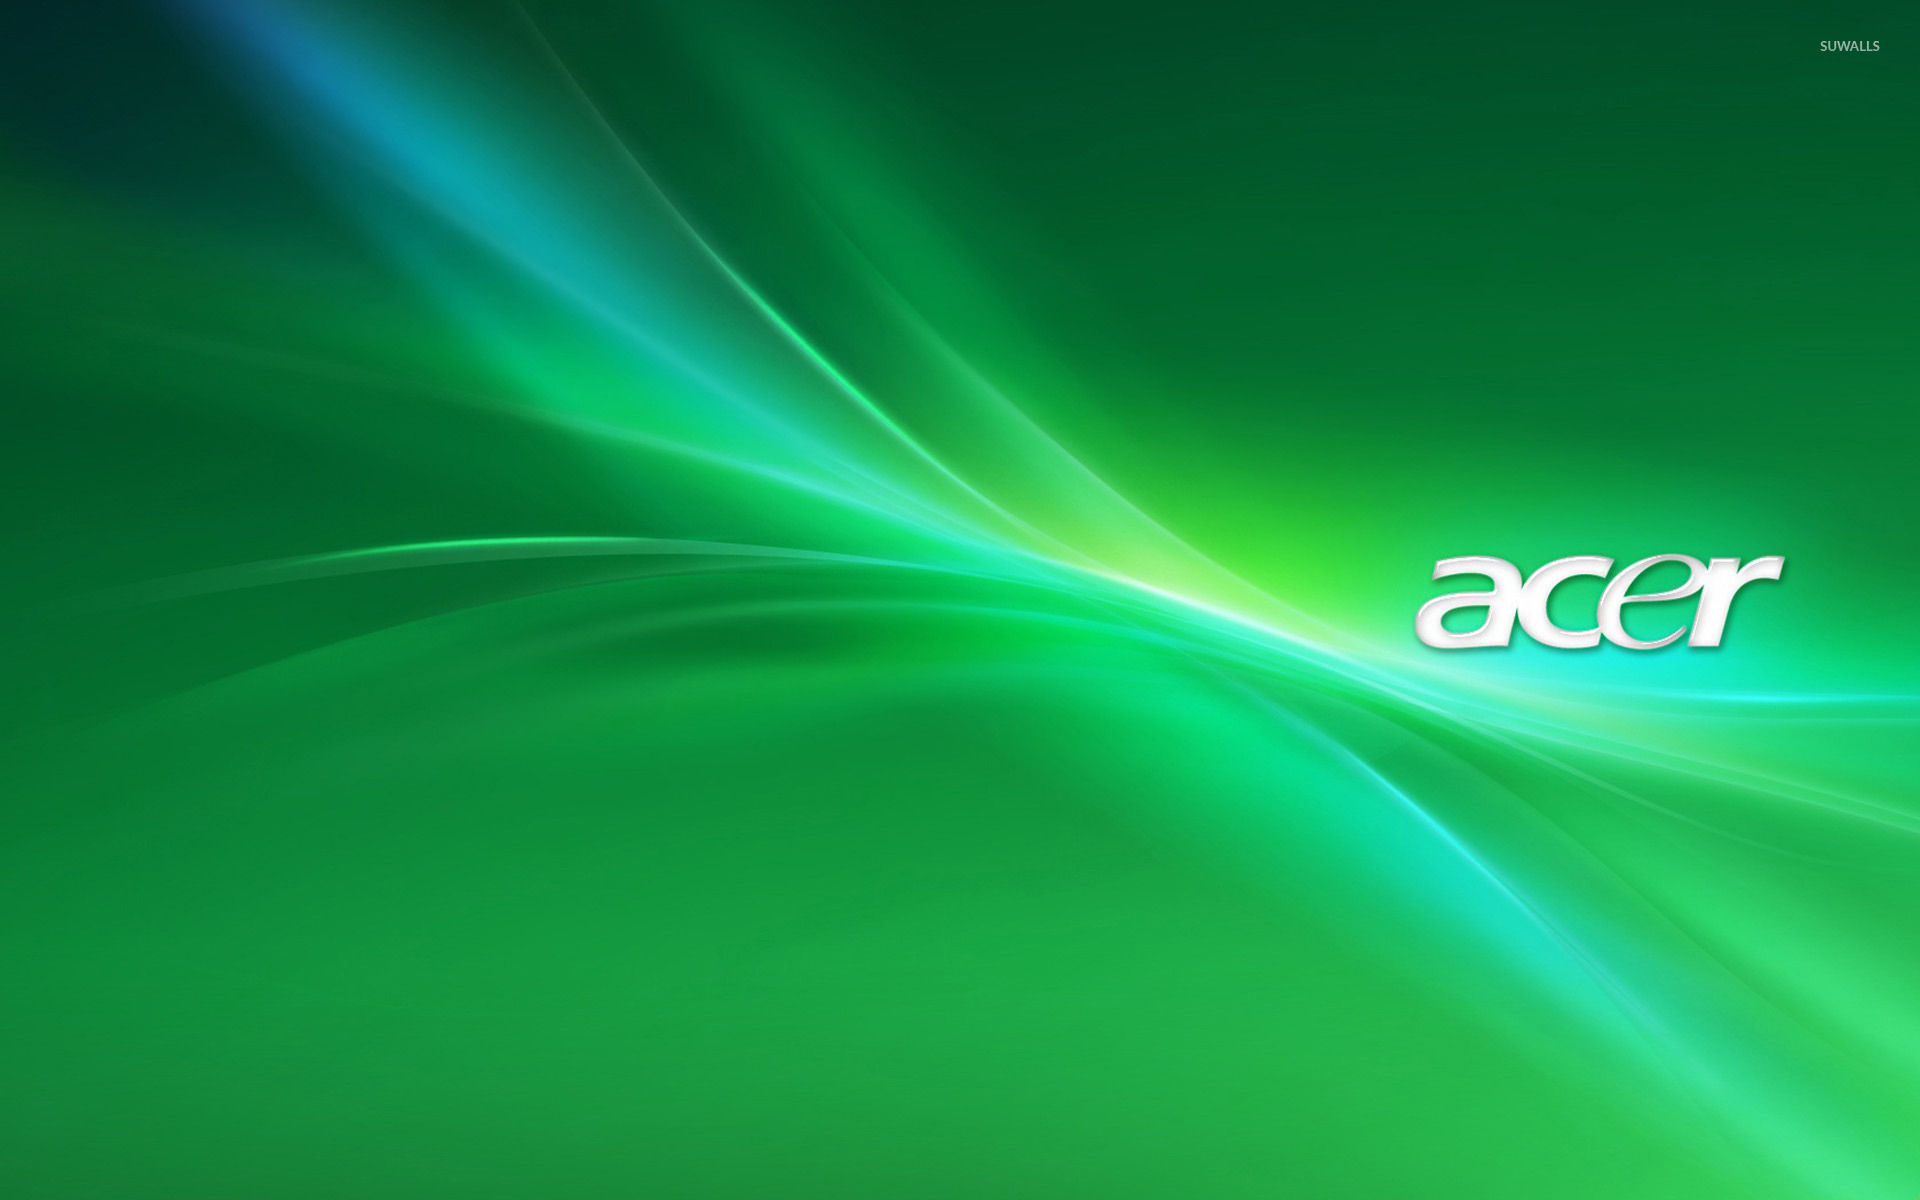 green acer logo wallpaper computer wallpapers 17735